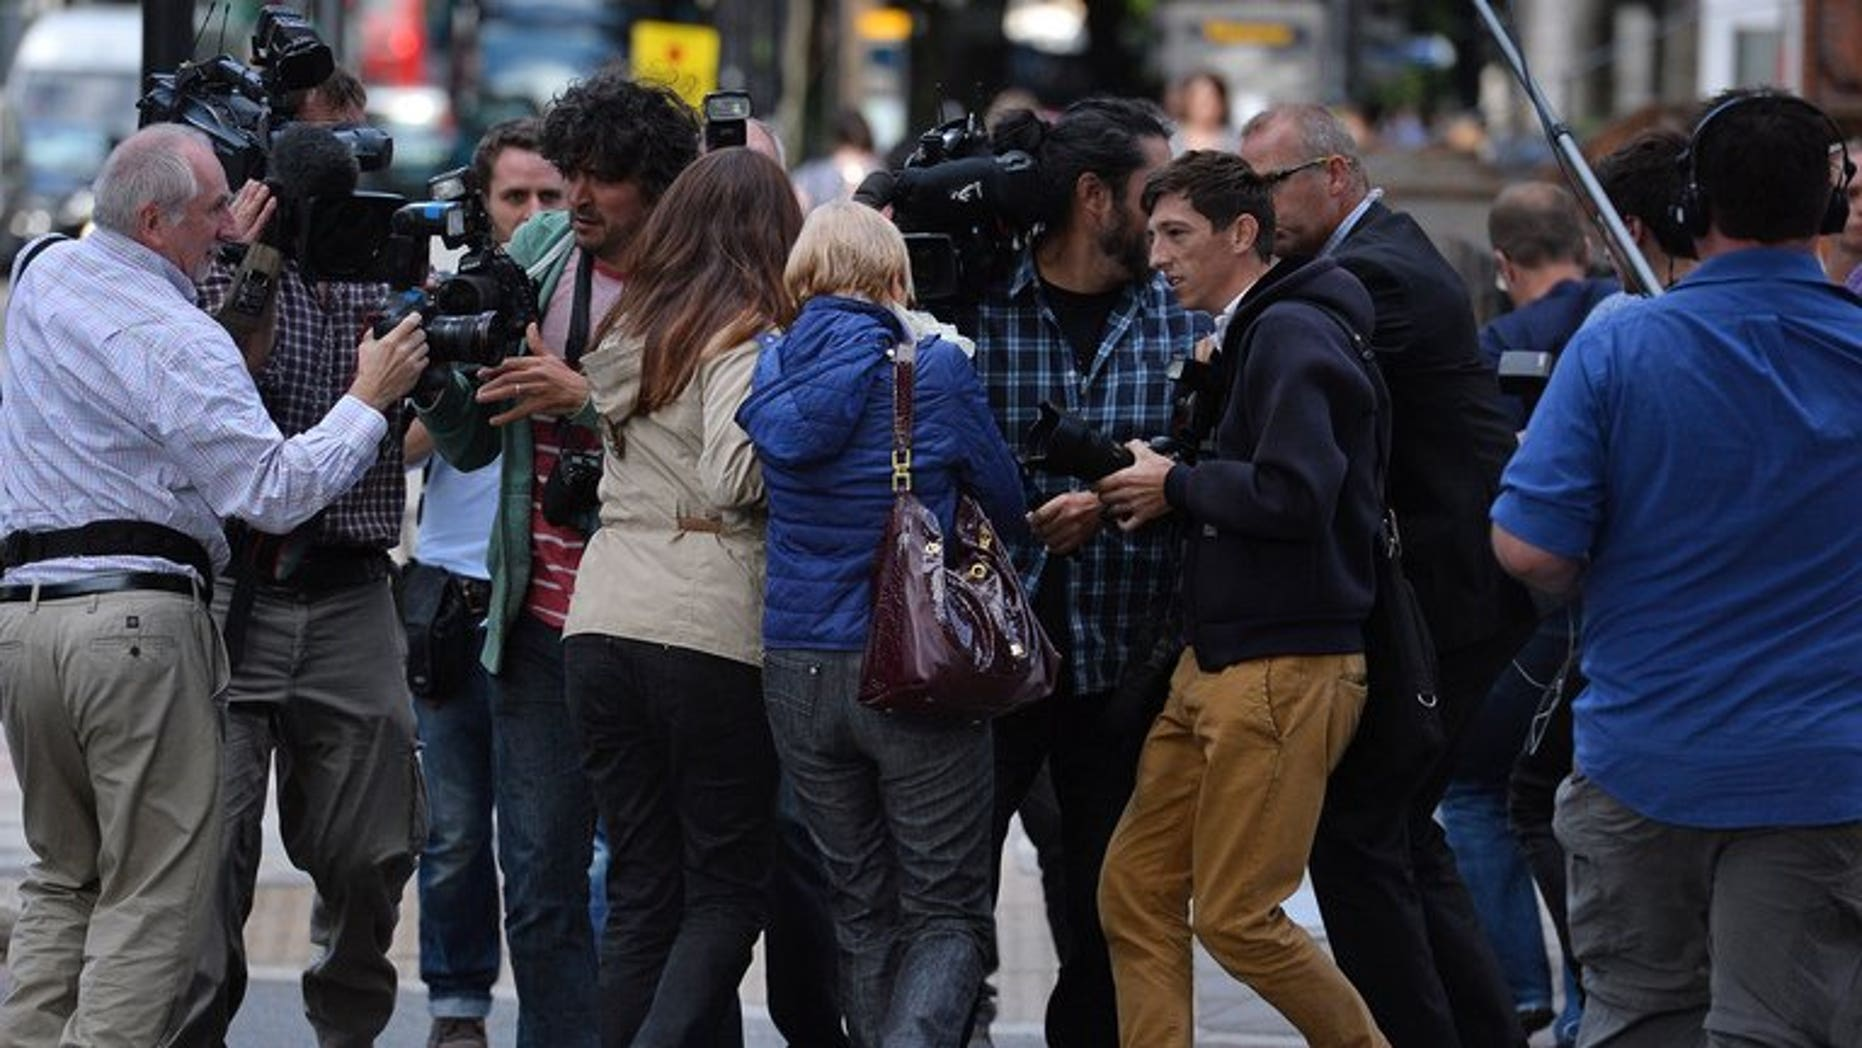 Anne (centre R) and Daniela Skinner (centre L), wife and daughter of alleged Mafia boss Domenico Rancadore, are pursued by the media, outside Westminster Magistrates court in London, on August 9, 2013.